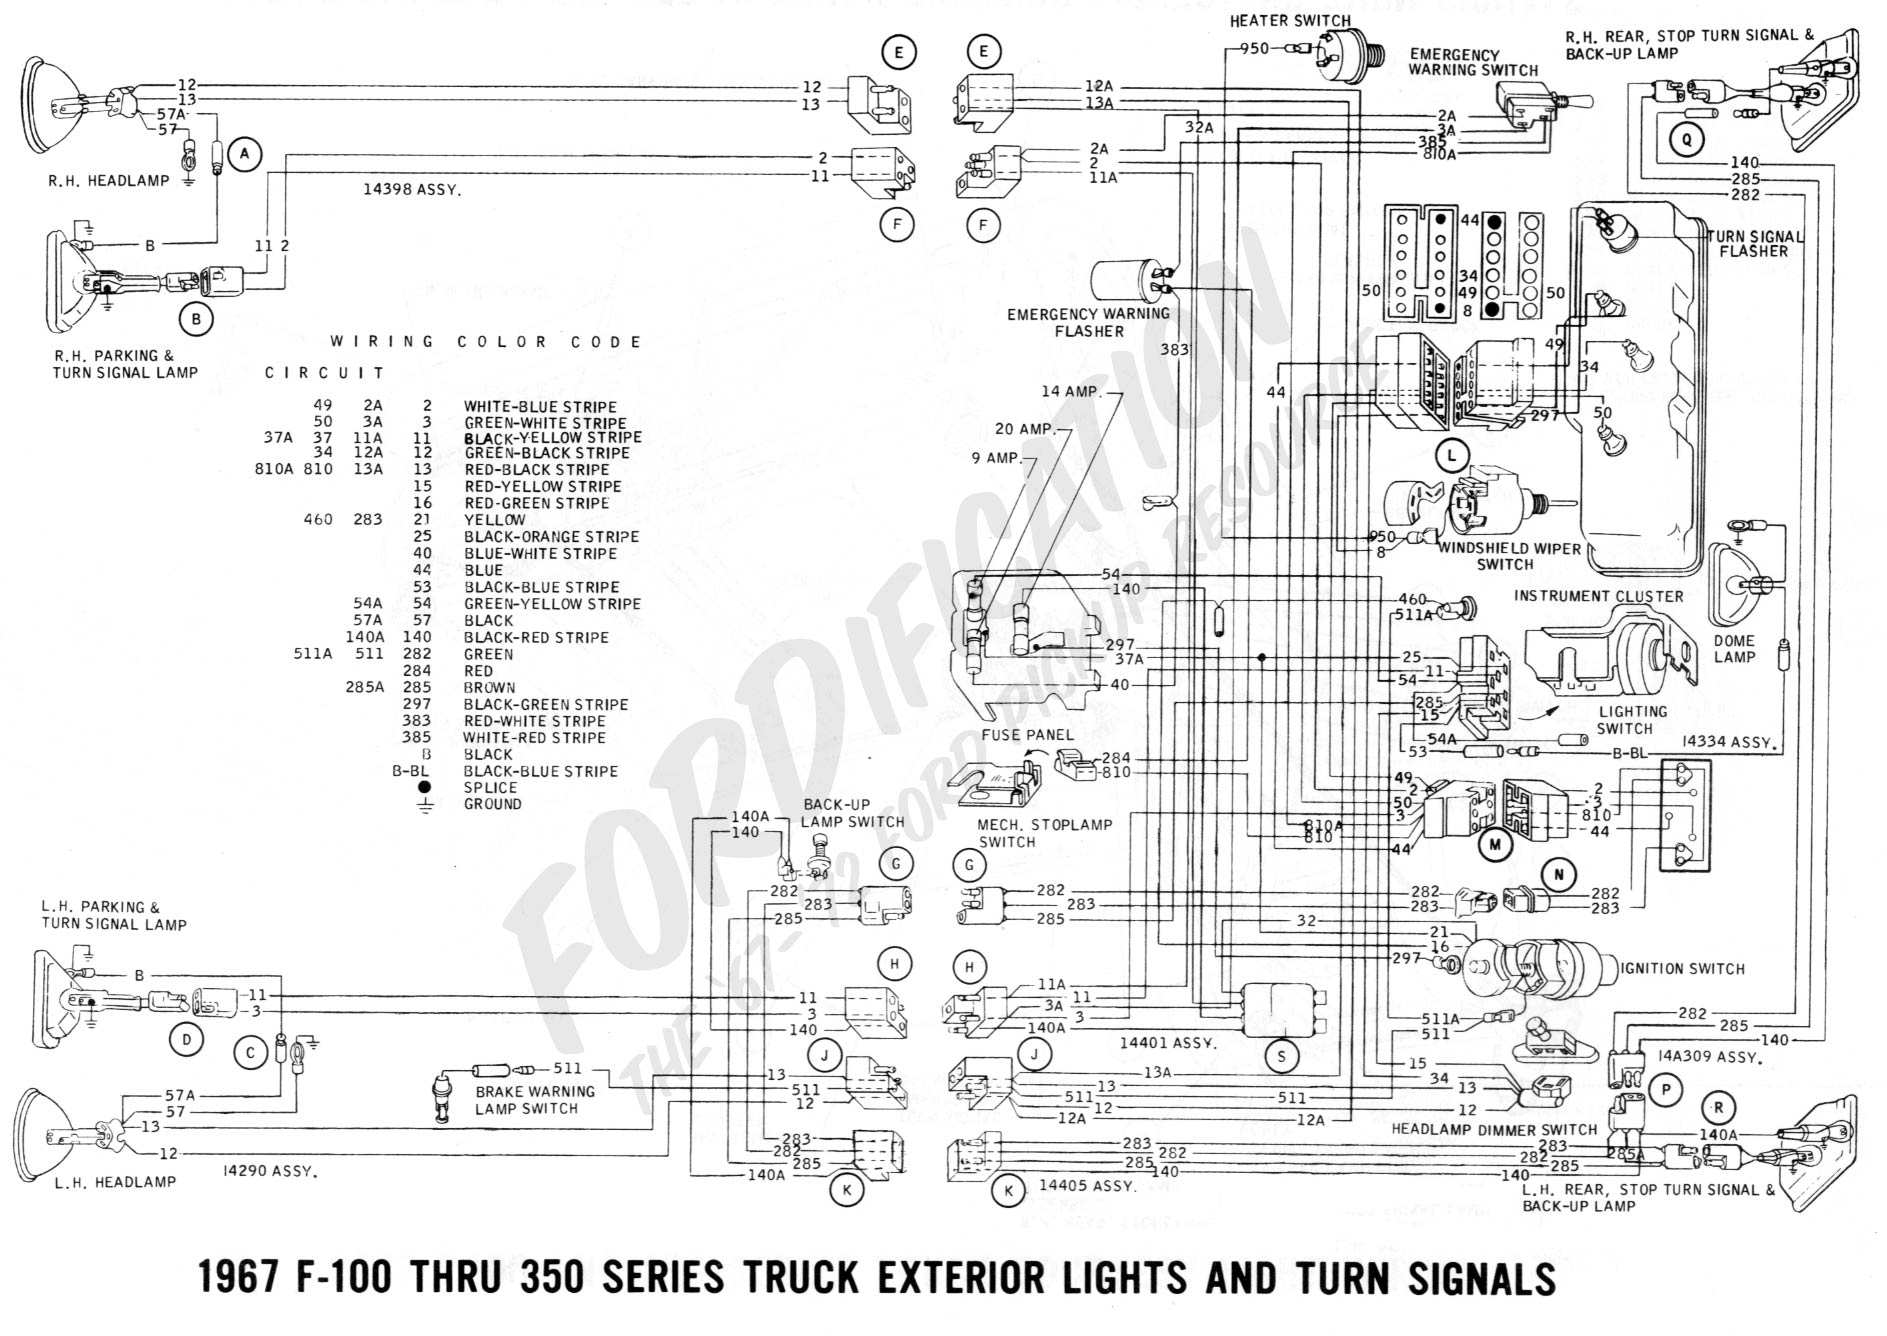 02 F350 Trailer Wiring Diagram | Trailer Wiring Diagram